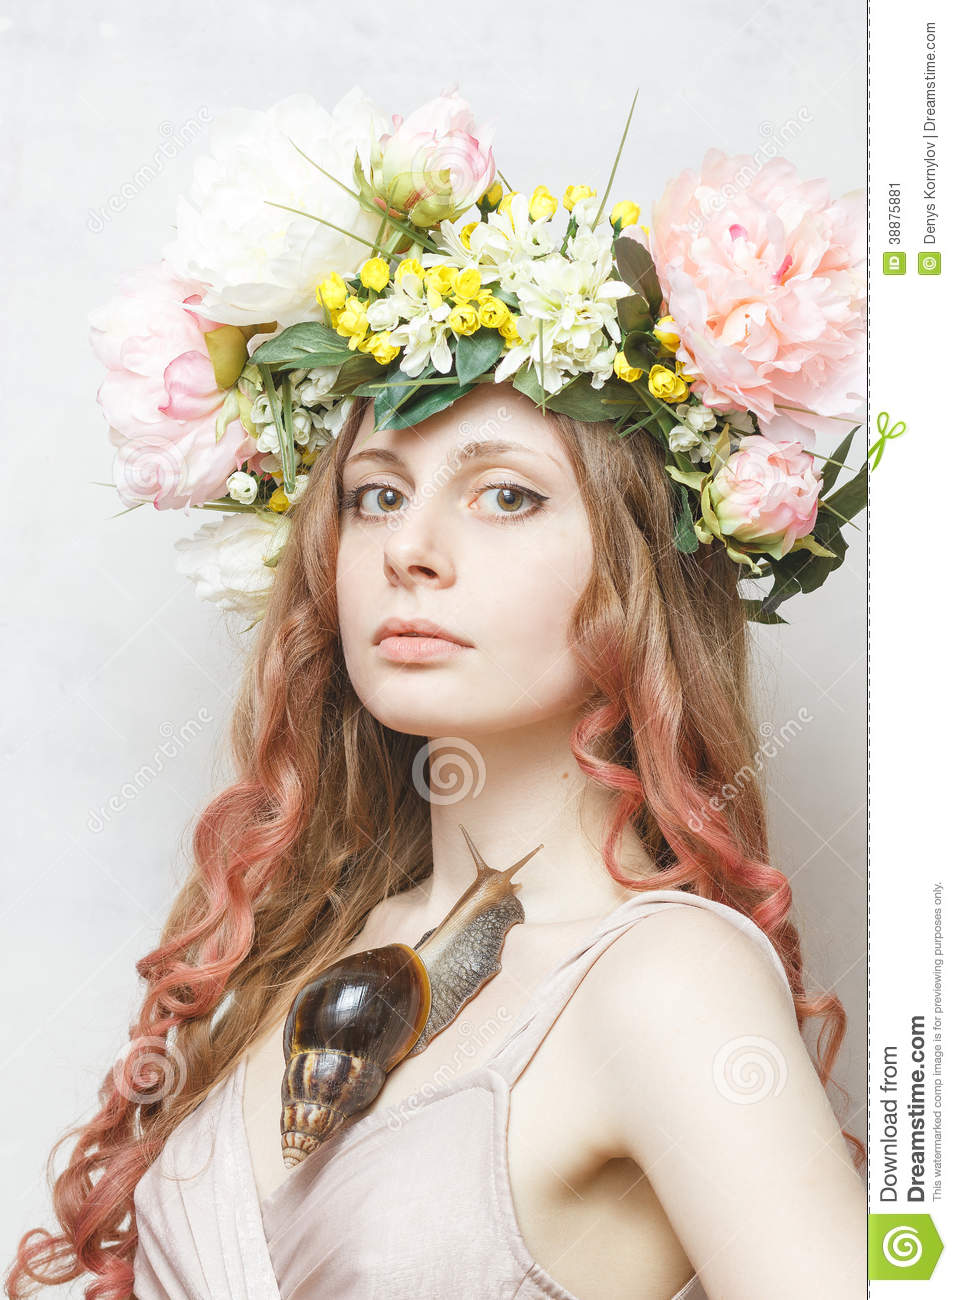 Calm Pretty Girl With Snail And Flower Crown Stock Image Image Of